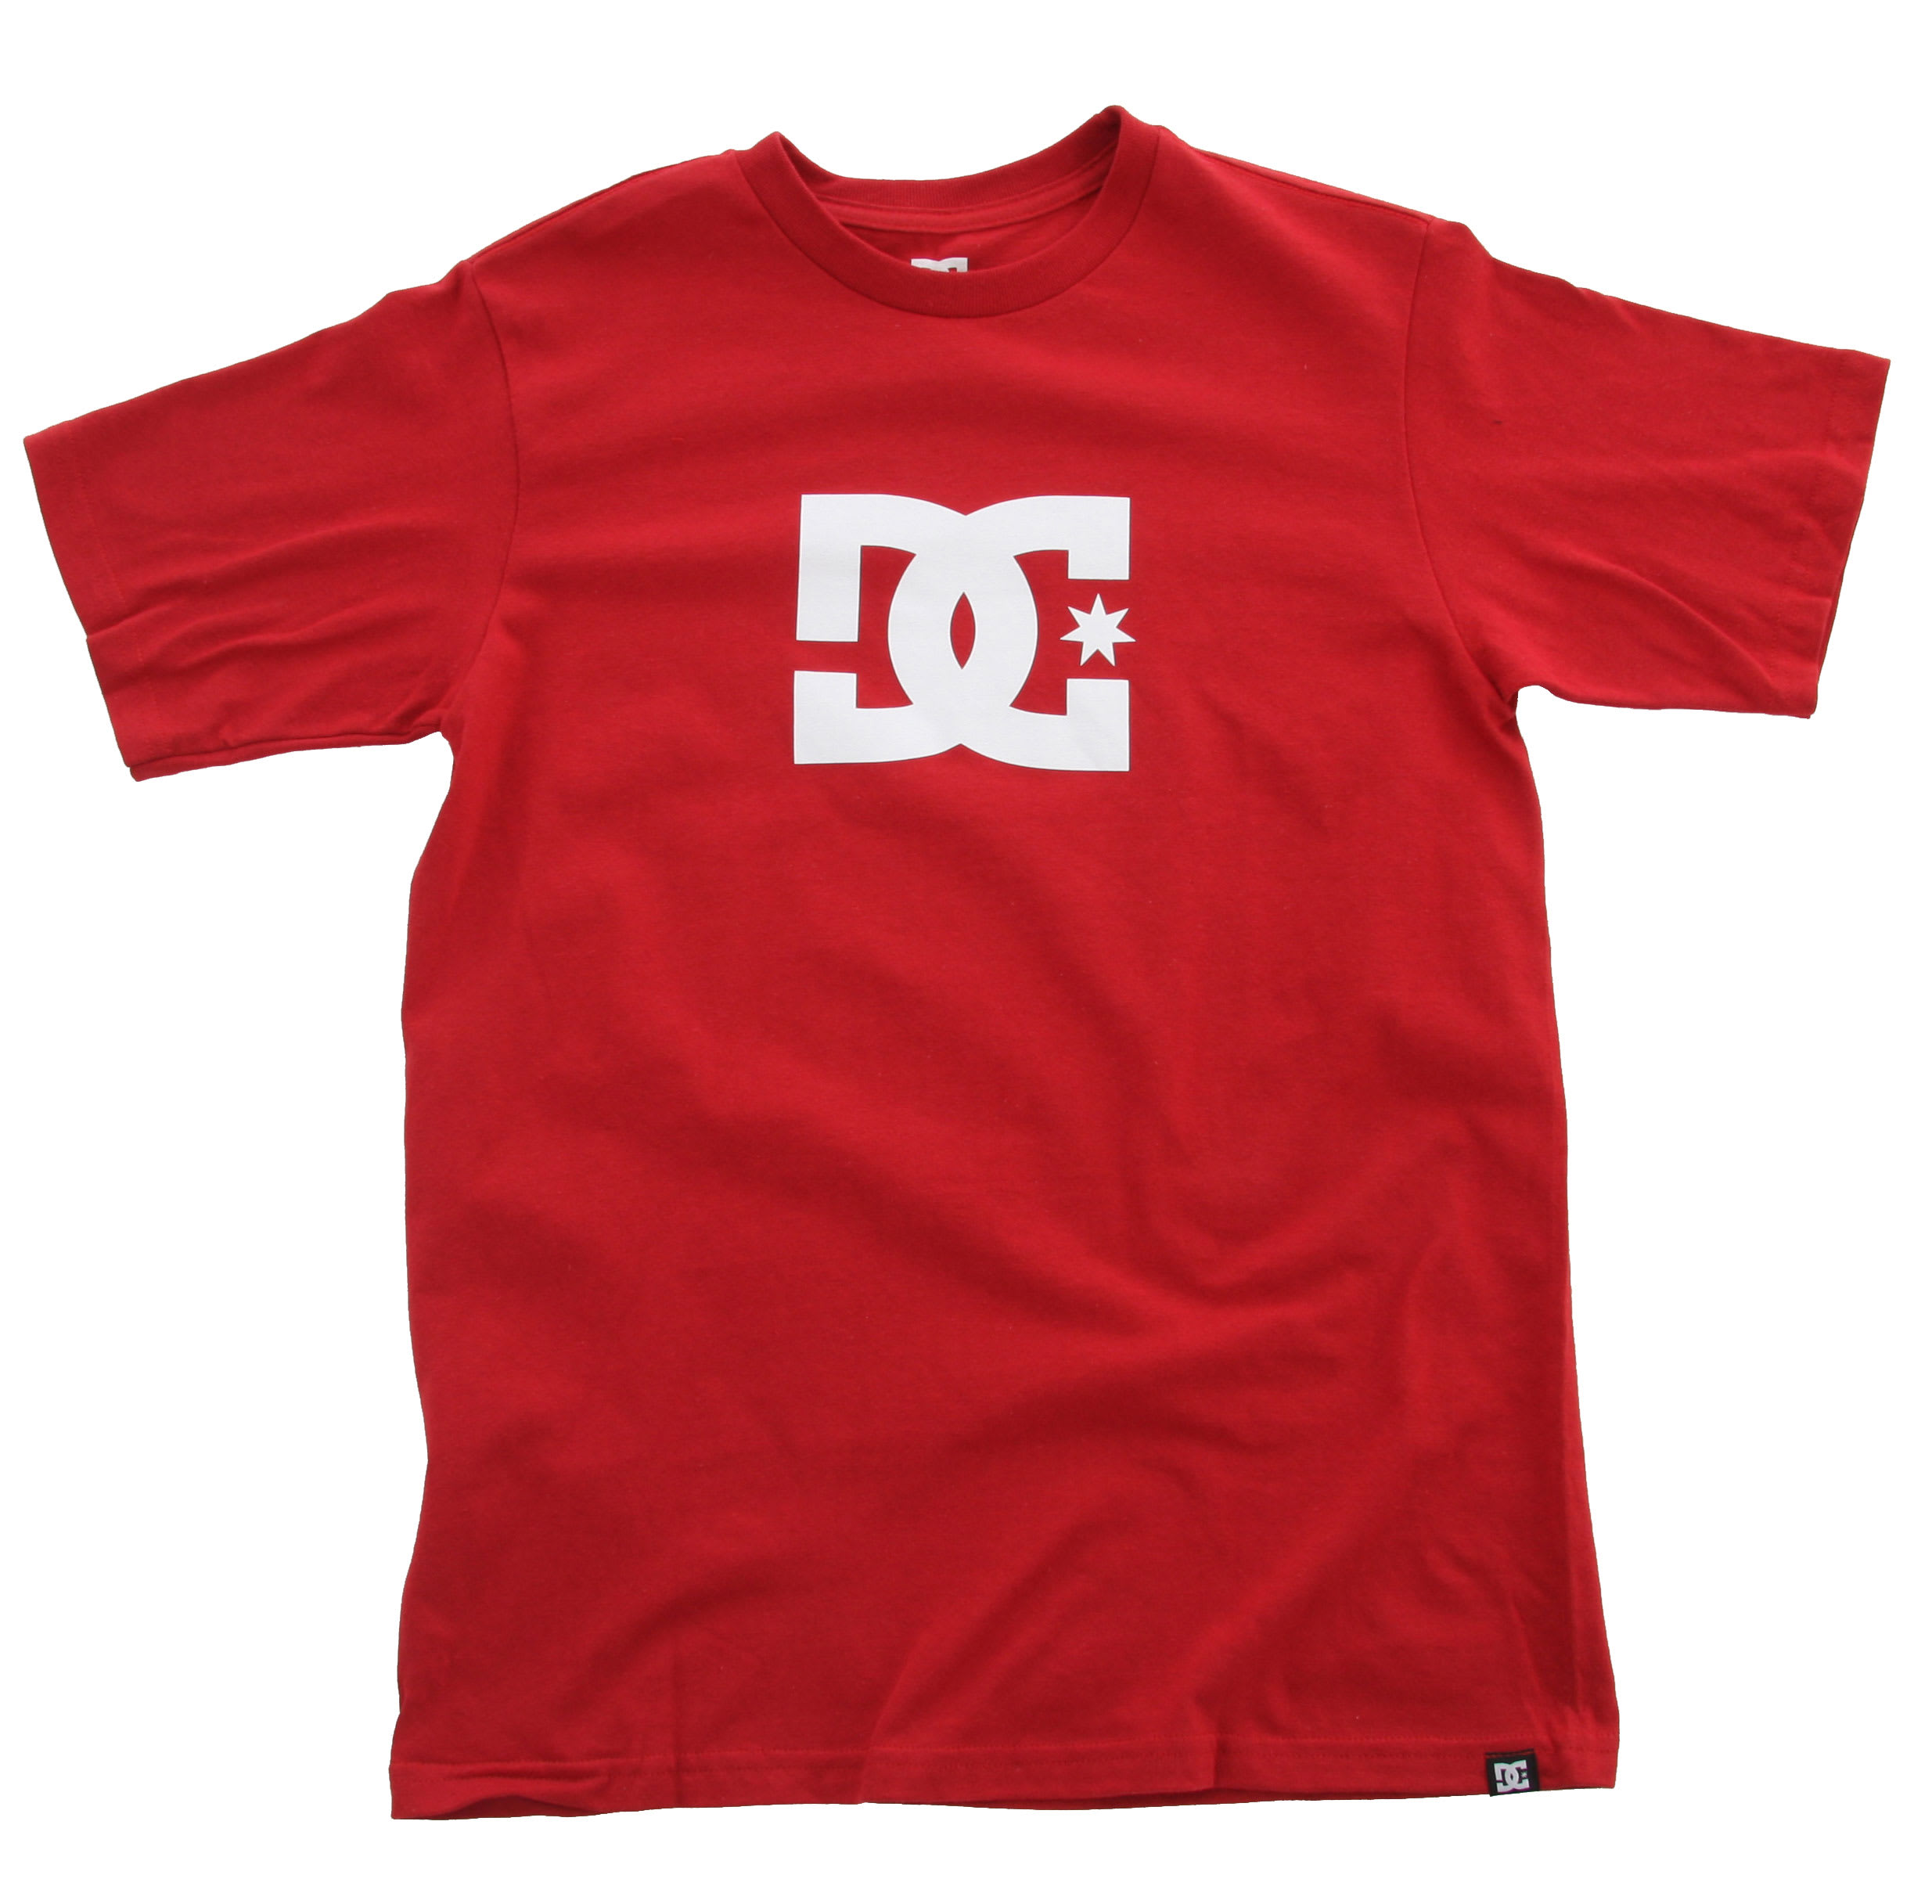 Shop for DC Star T-Shirt Deep Red - Kid's